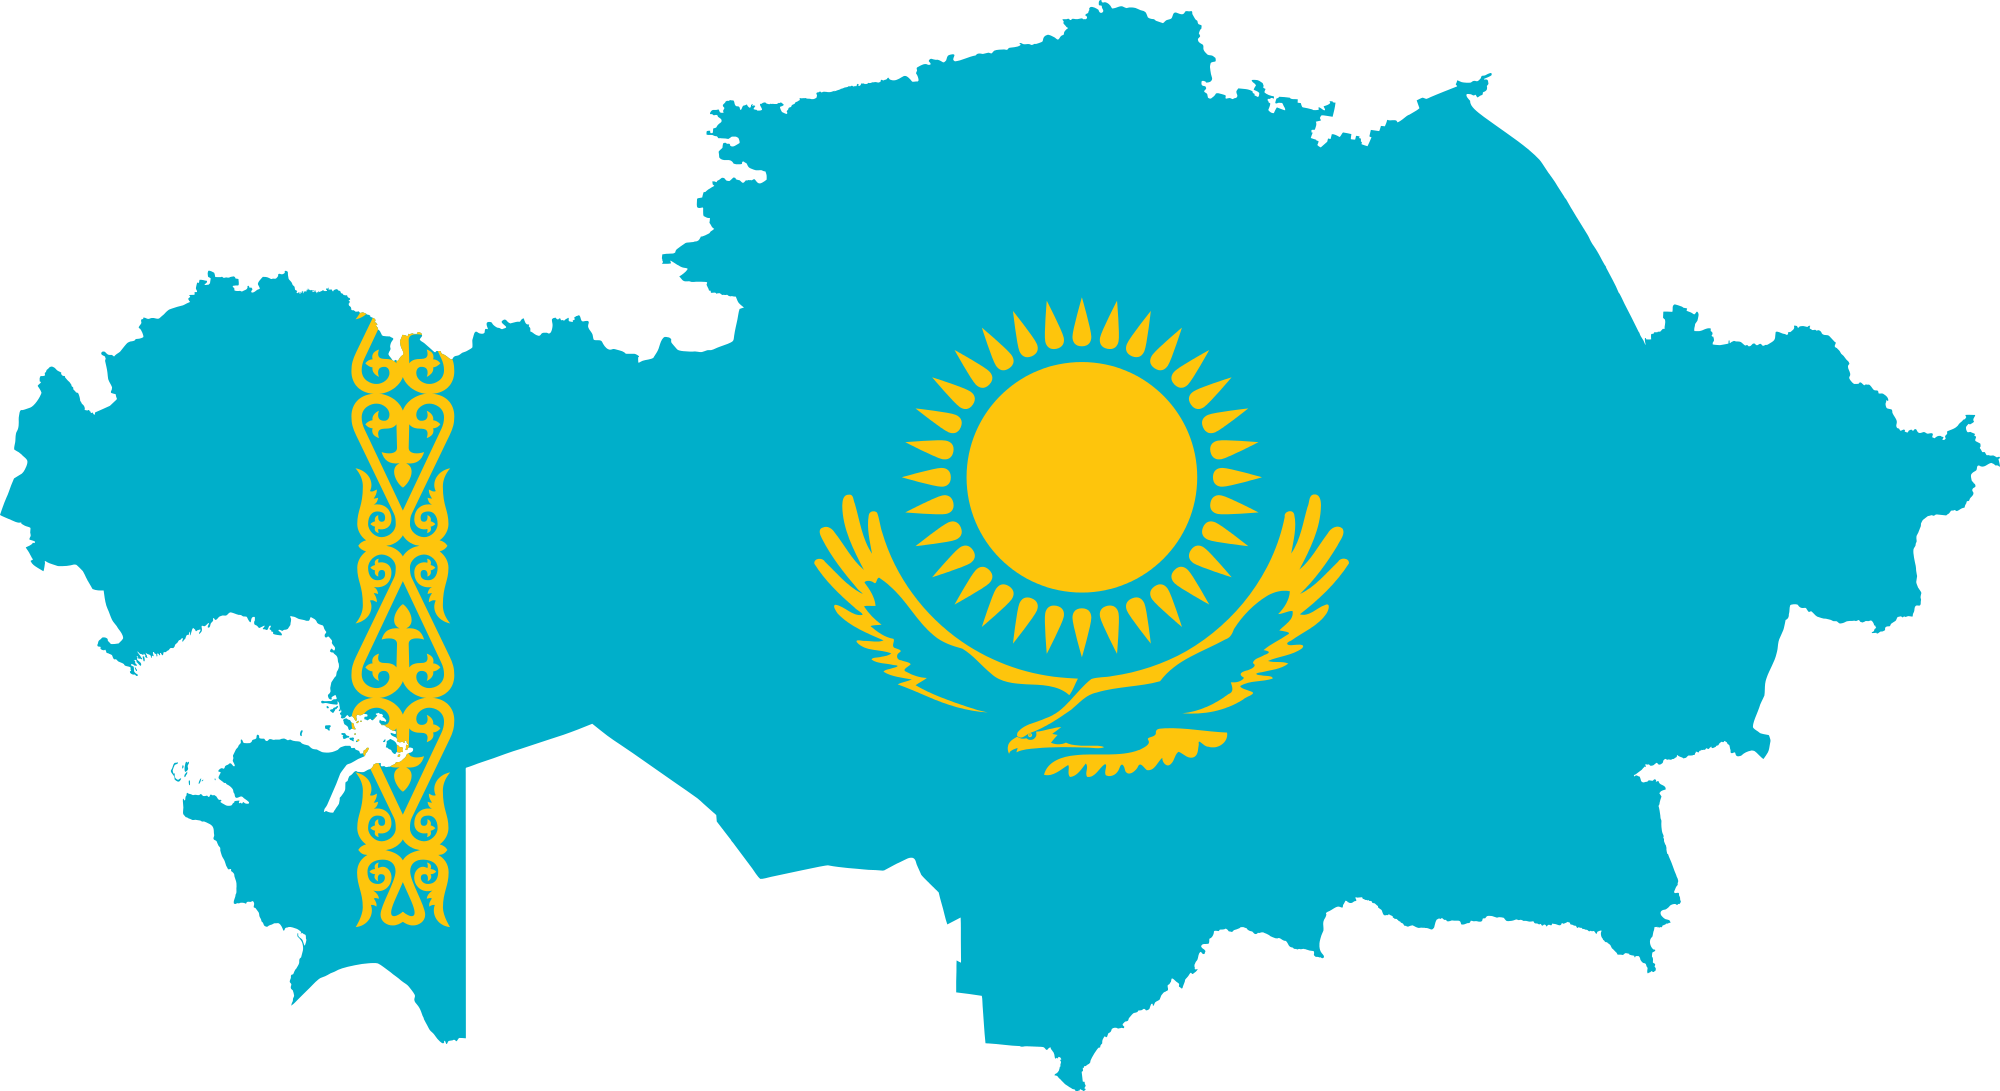 Flag map of Kazakhstan precise boundaries